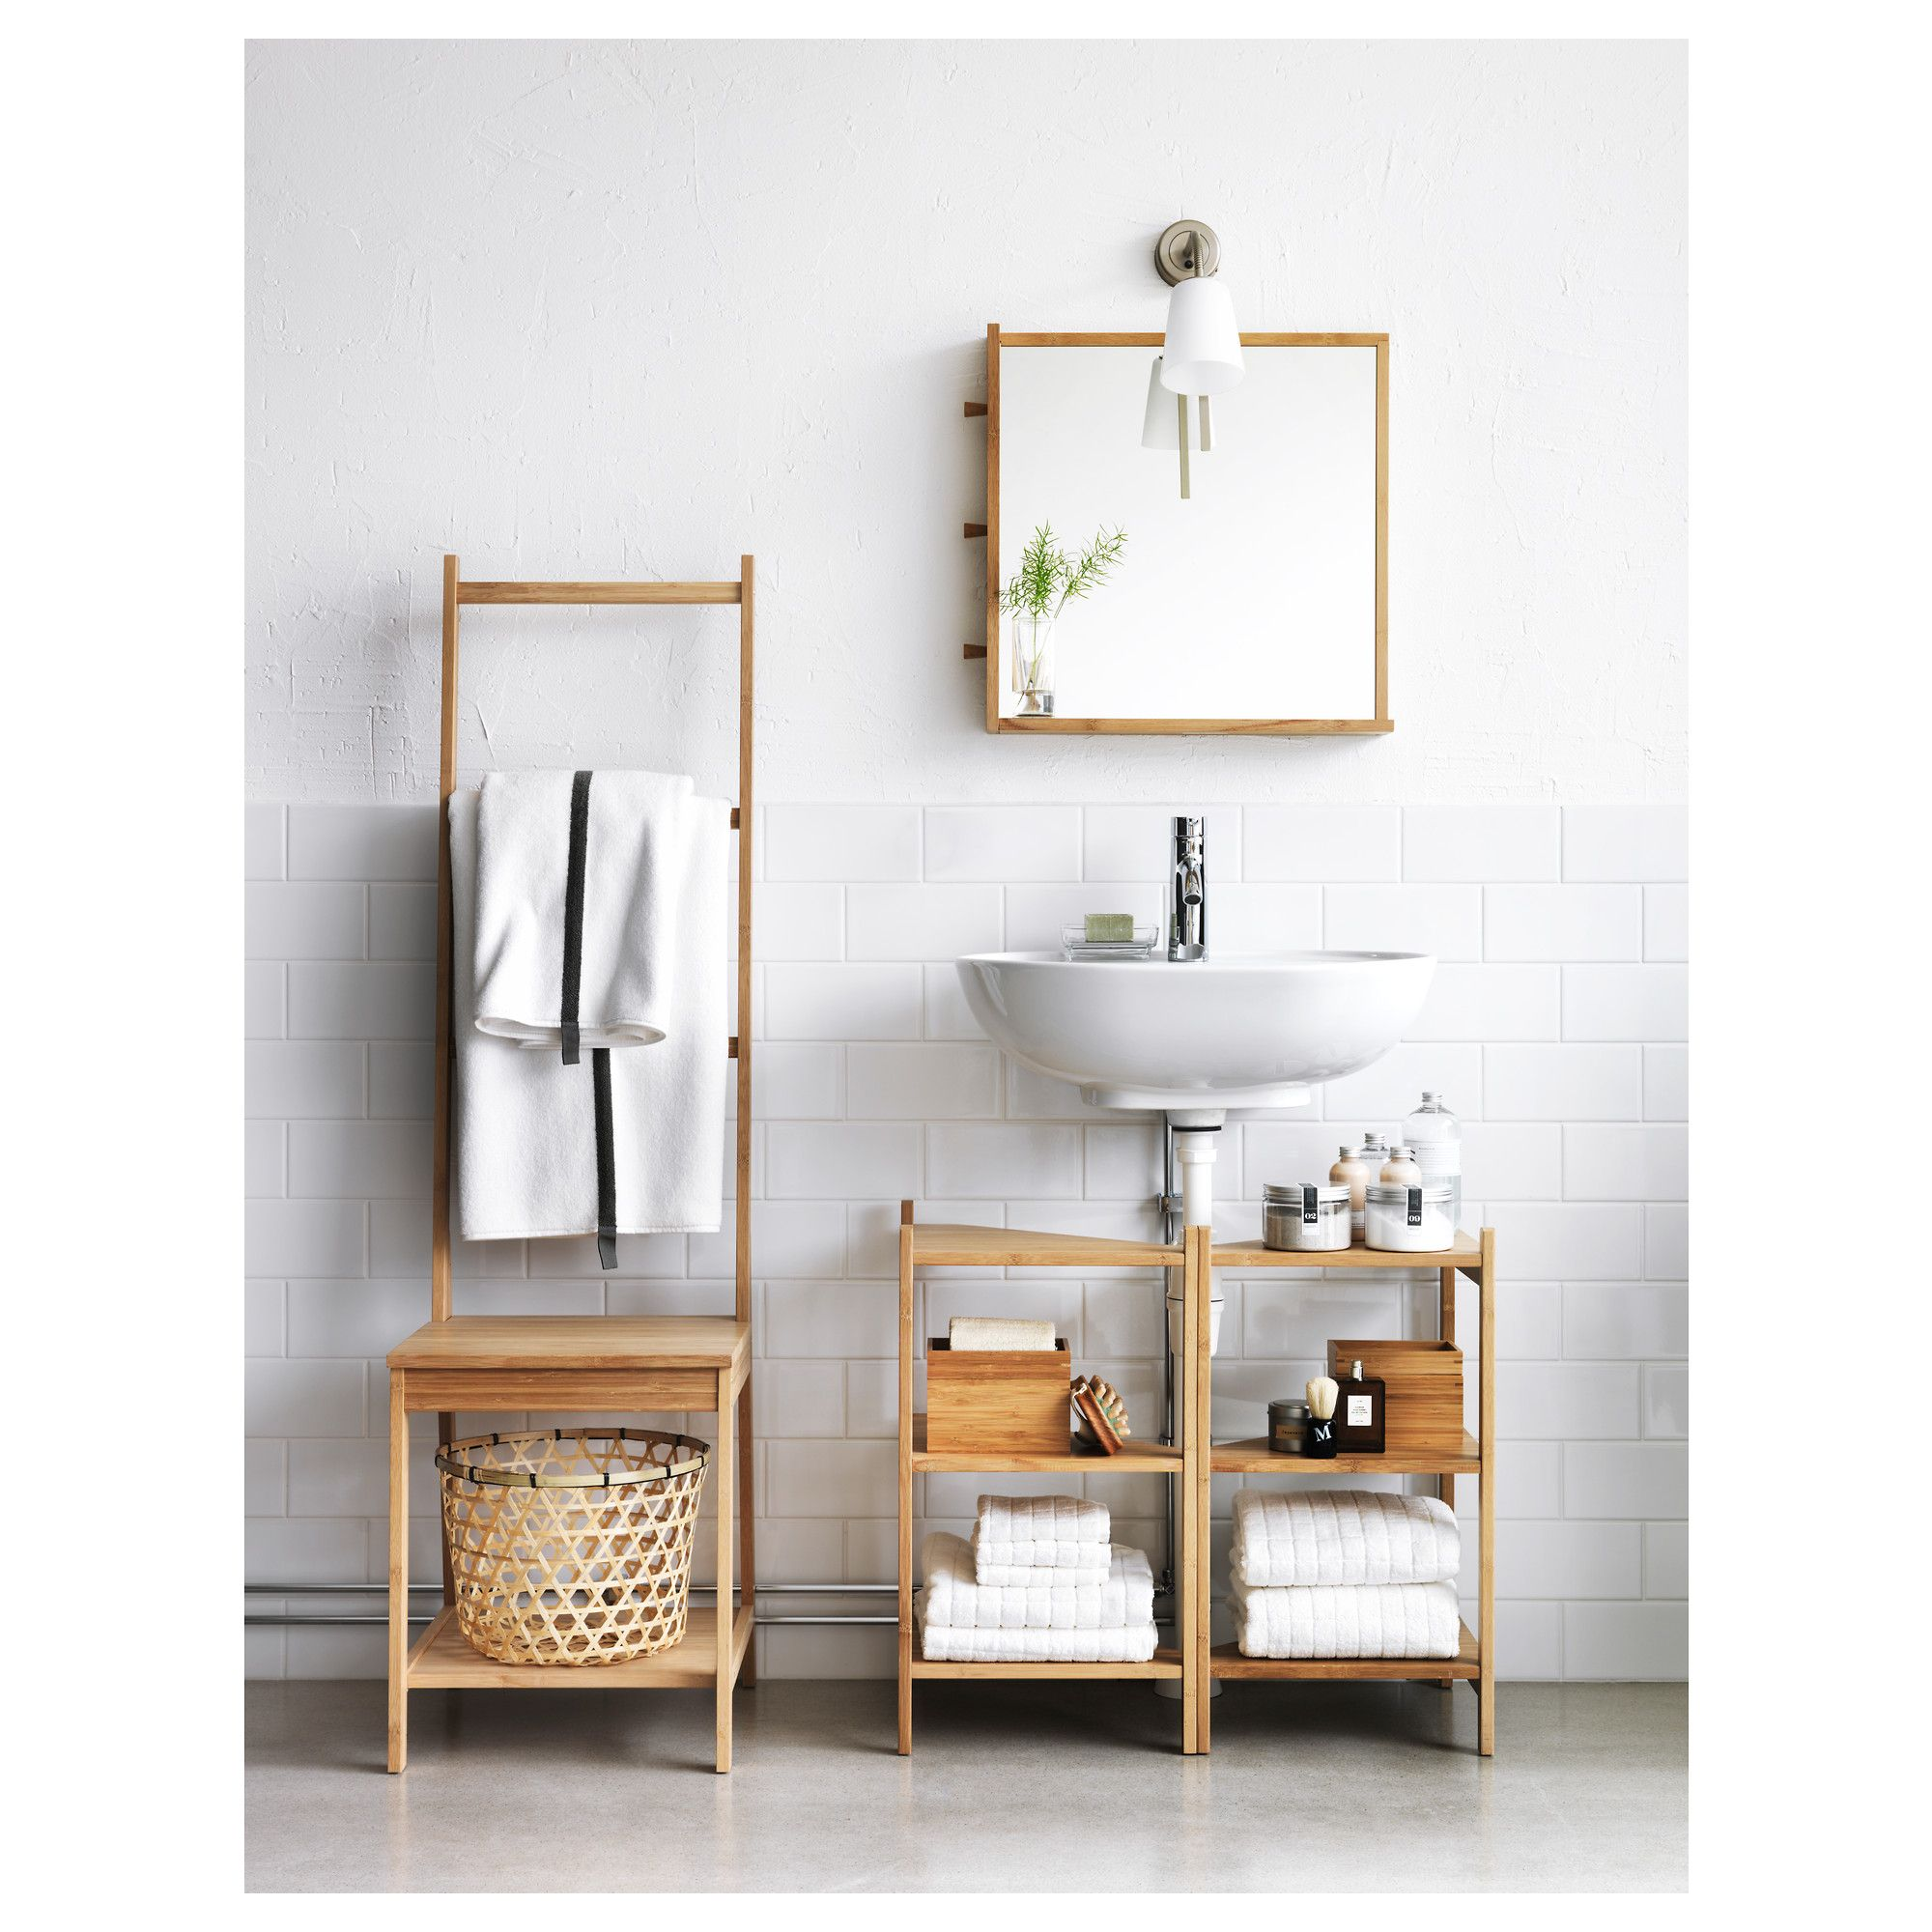 rÅgrund wash-basin/corner shelf bamboo 34x60 cm | ikea bath